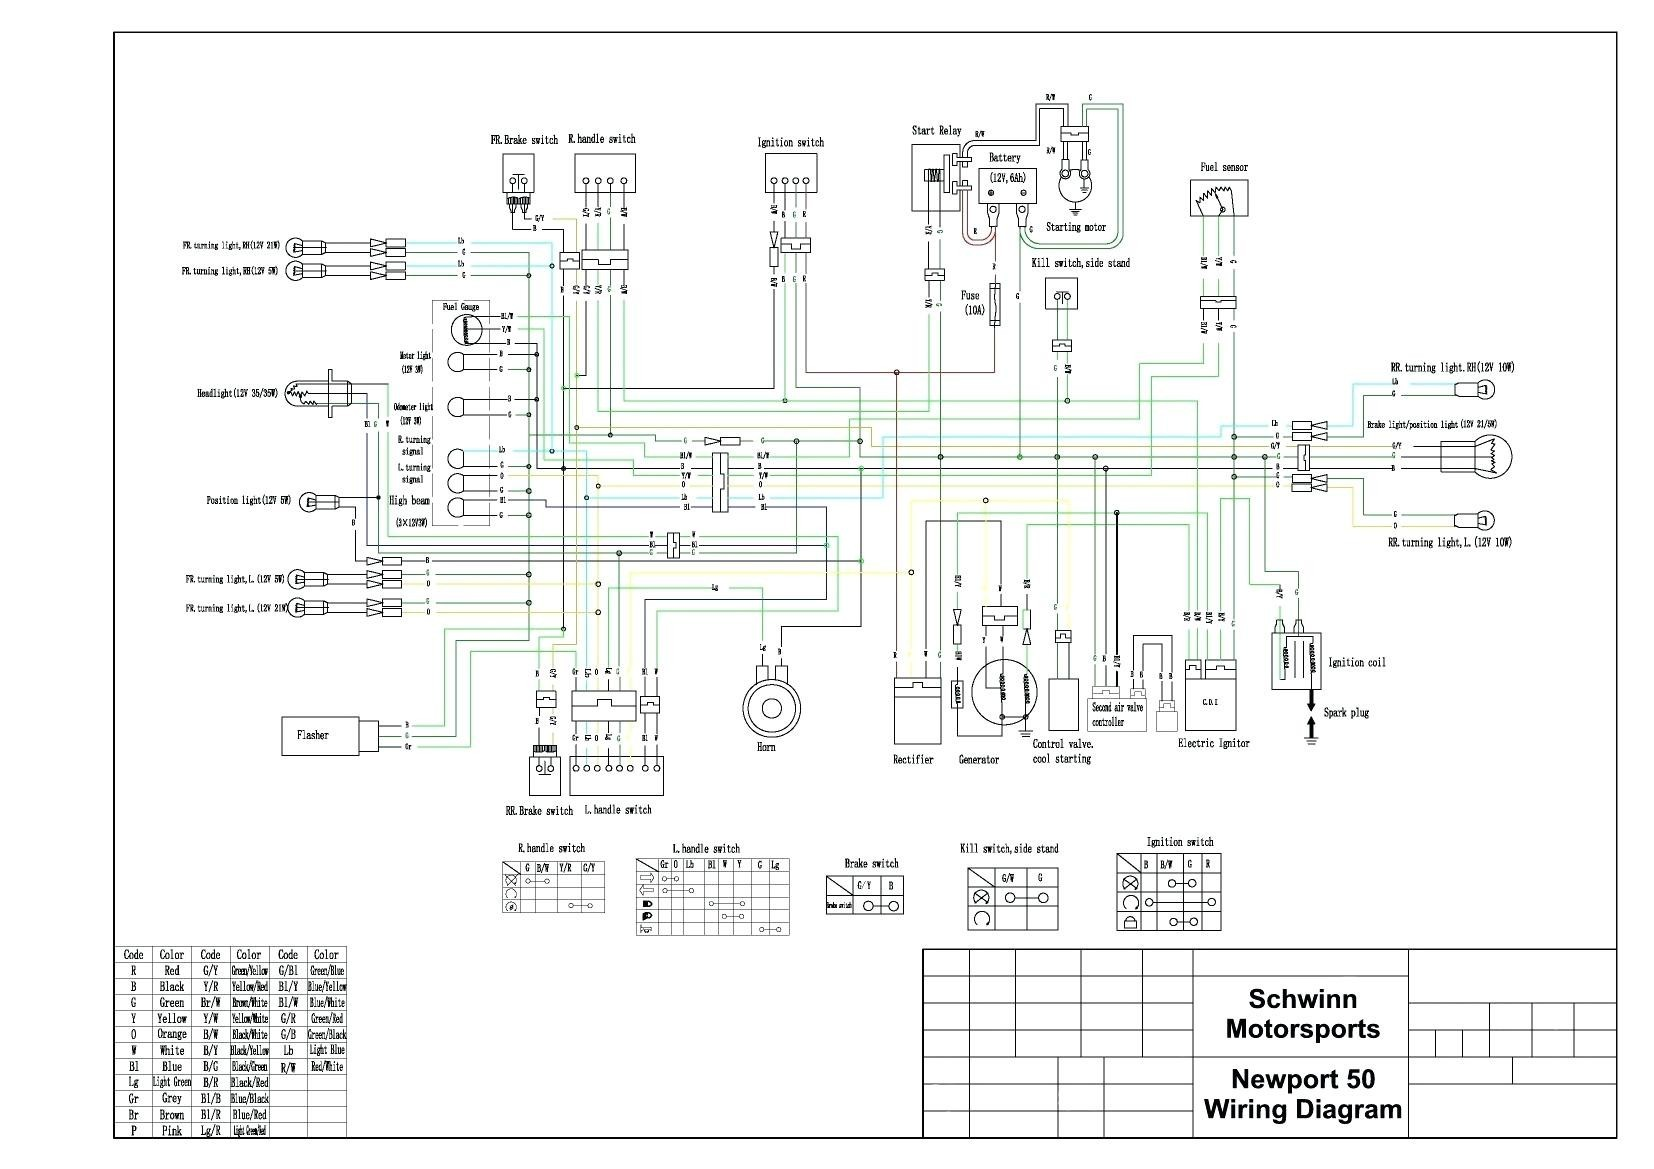 jazzy power chair wiring diagram enthusiast wiring diagrams u2022 rh rasalibre co Jazzy Motorized Chairs Model 2010 Jazzy 1103 Ultra Manual